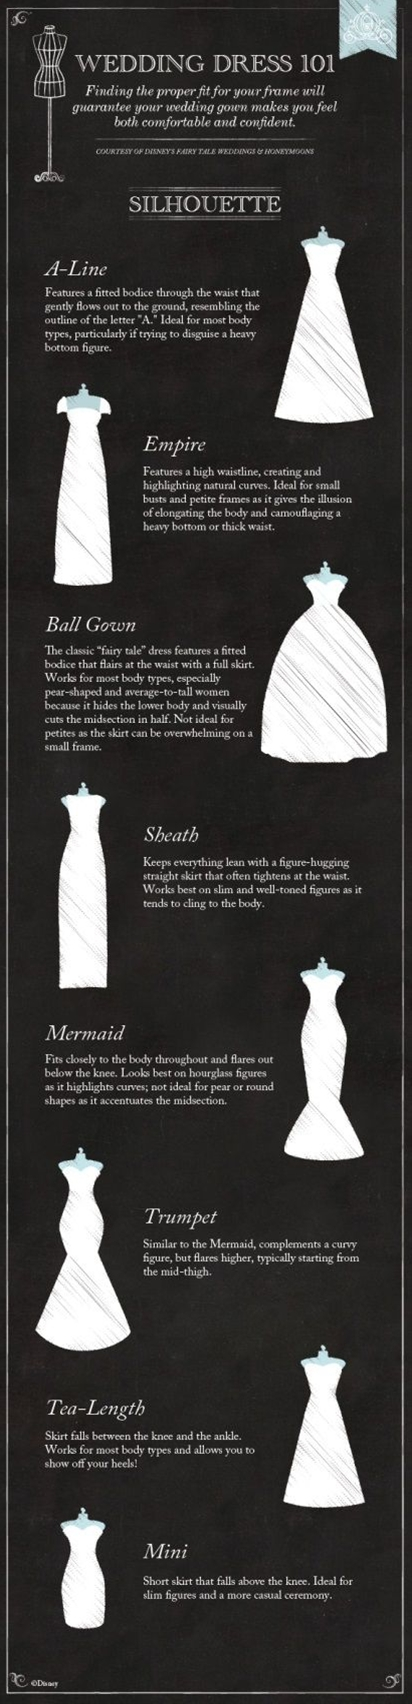 how to choose your dress for your big day